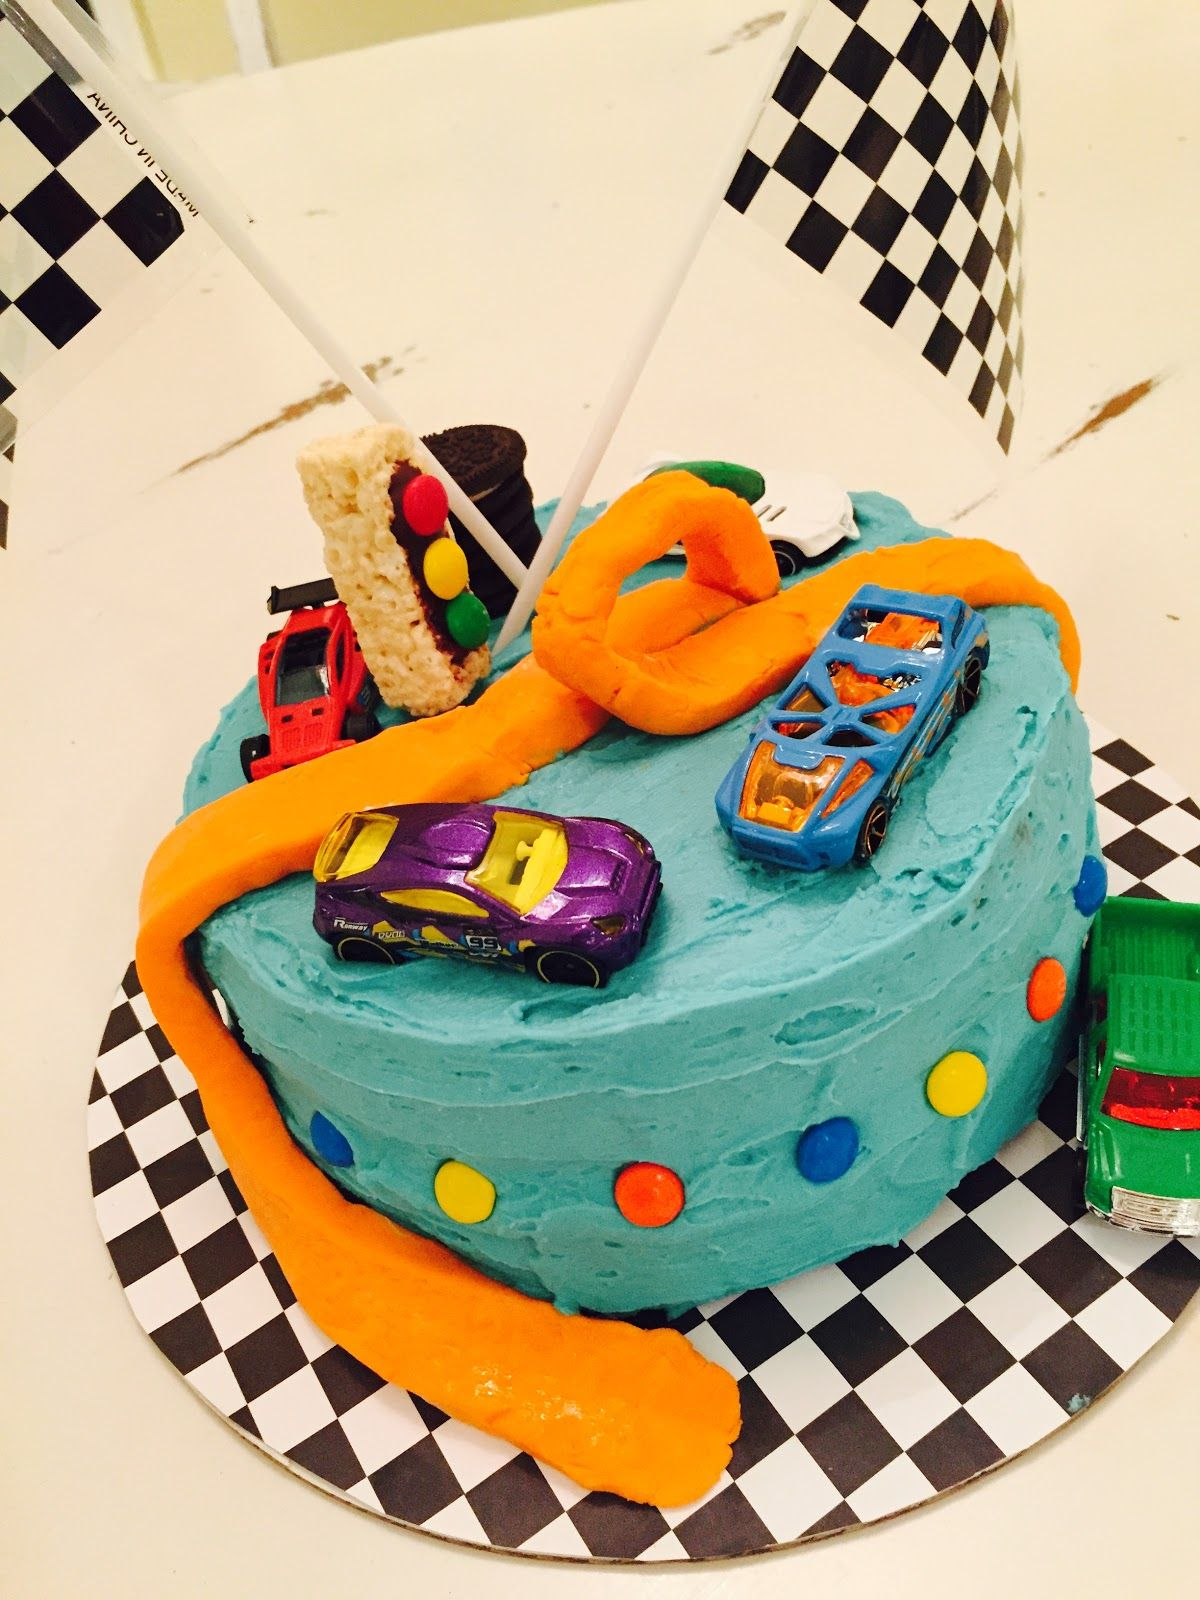 Hot Wheels Cake First Attempt With Fondant With Images Hot